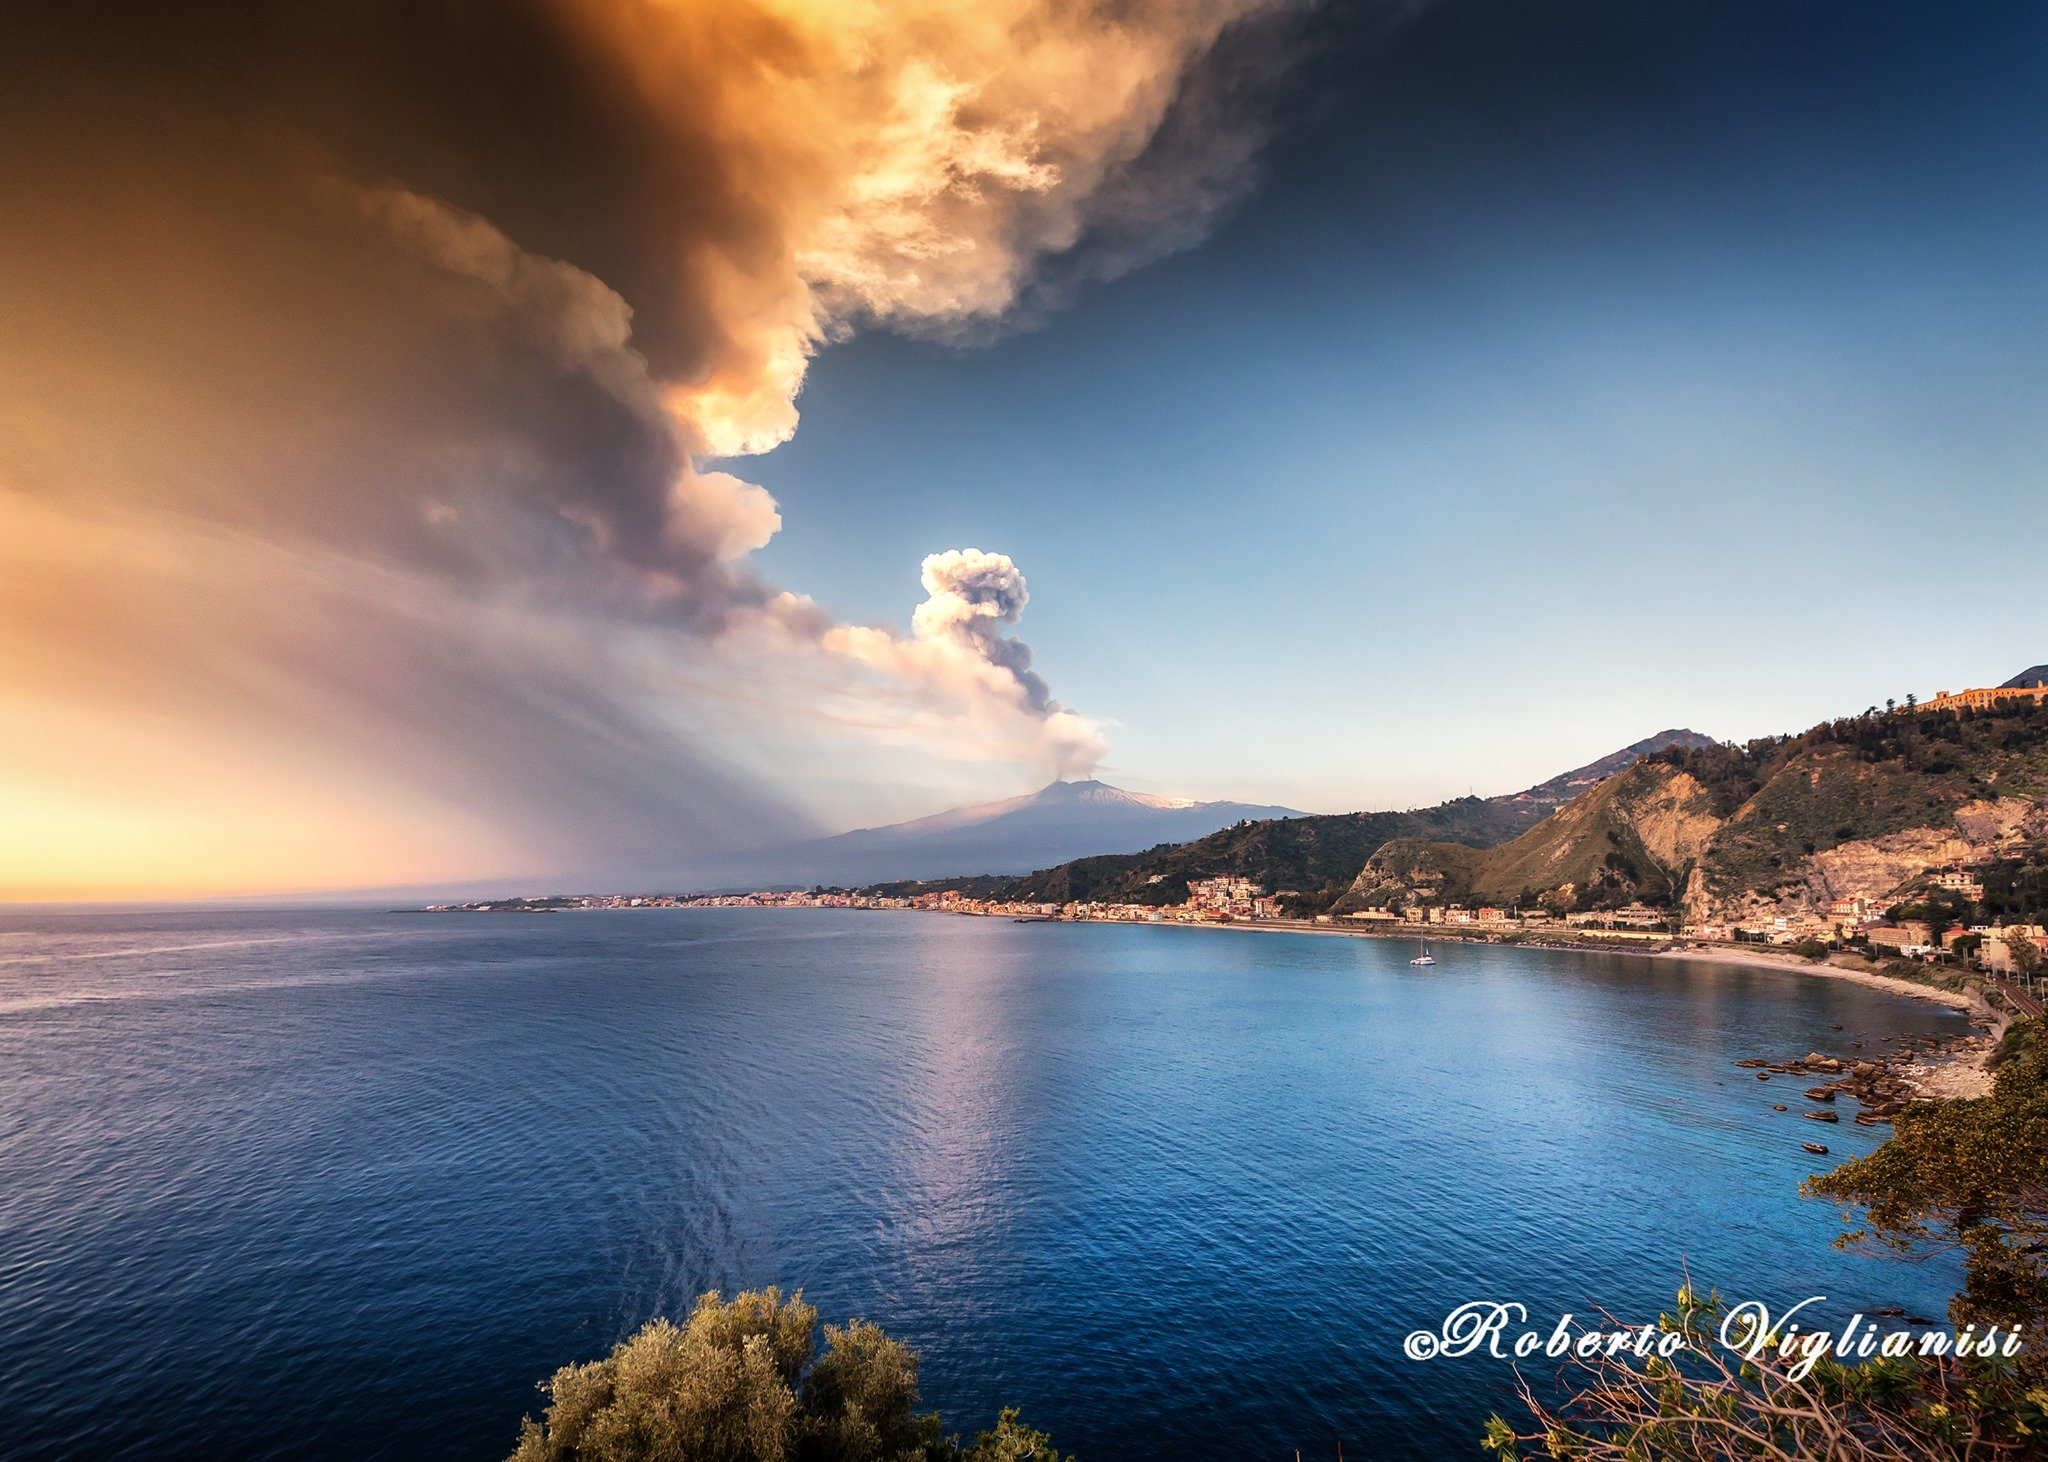 7th eruption, 28th feb 2021. The view from Capo Taormina, Viglianisi